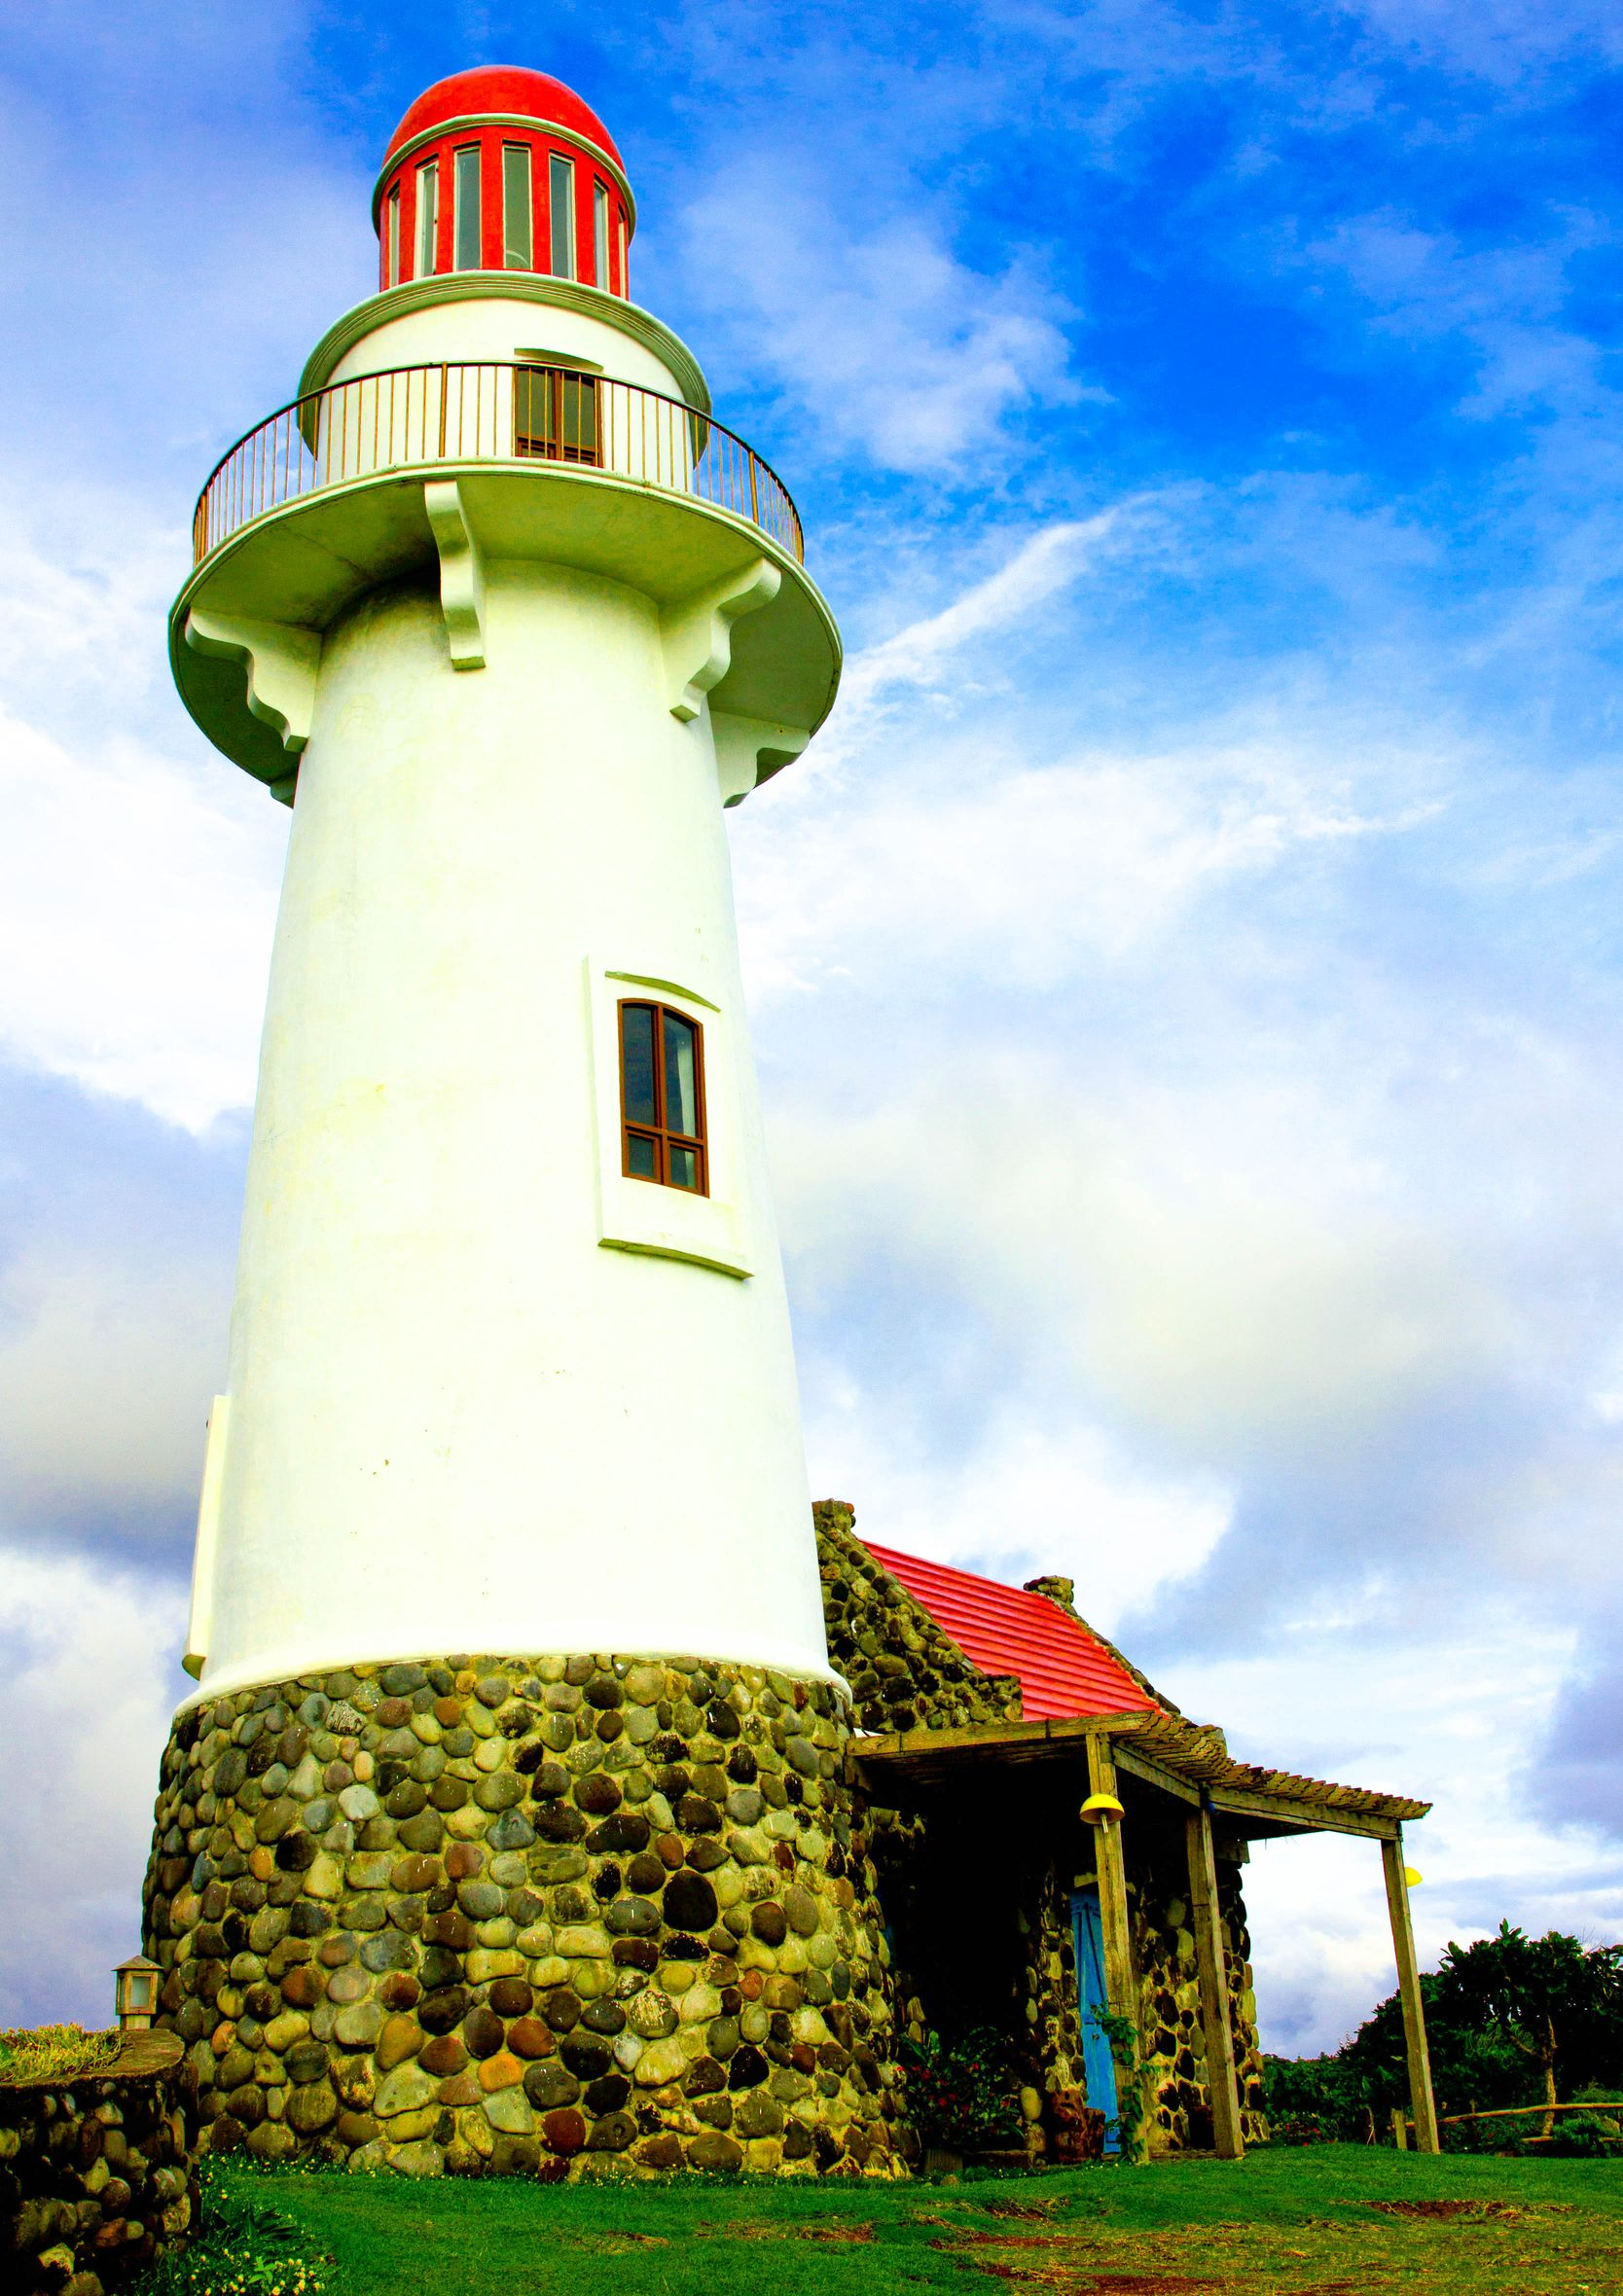 White lighthouse raised on a green hill beneath a cloudy sky